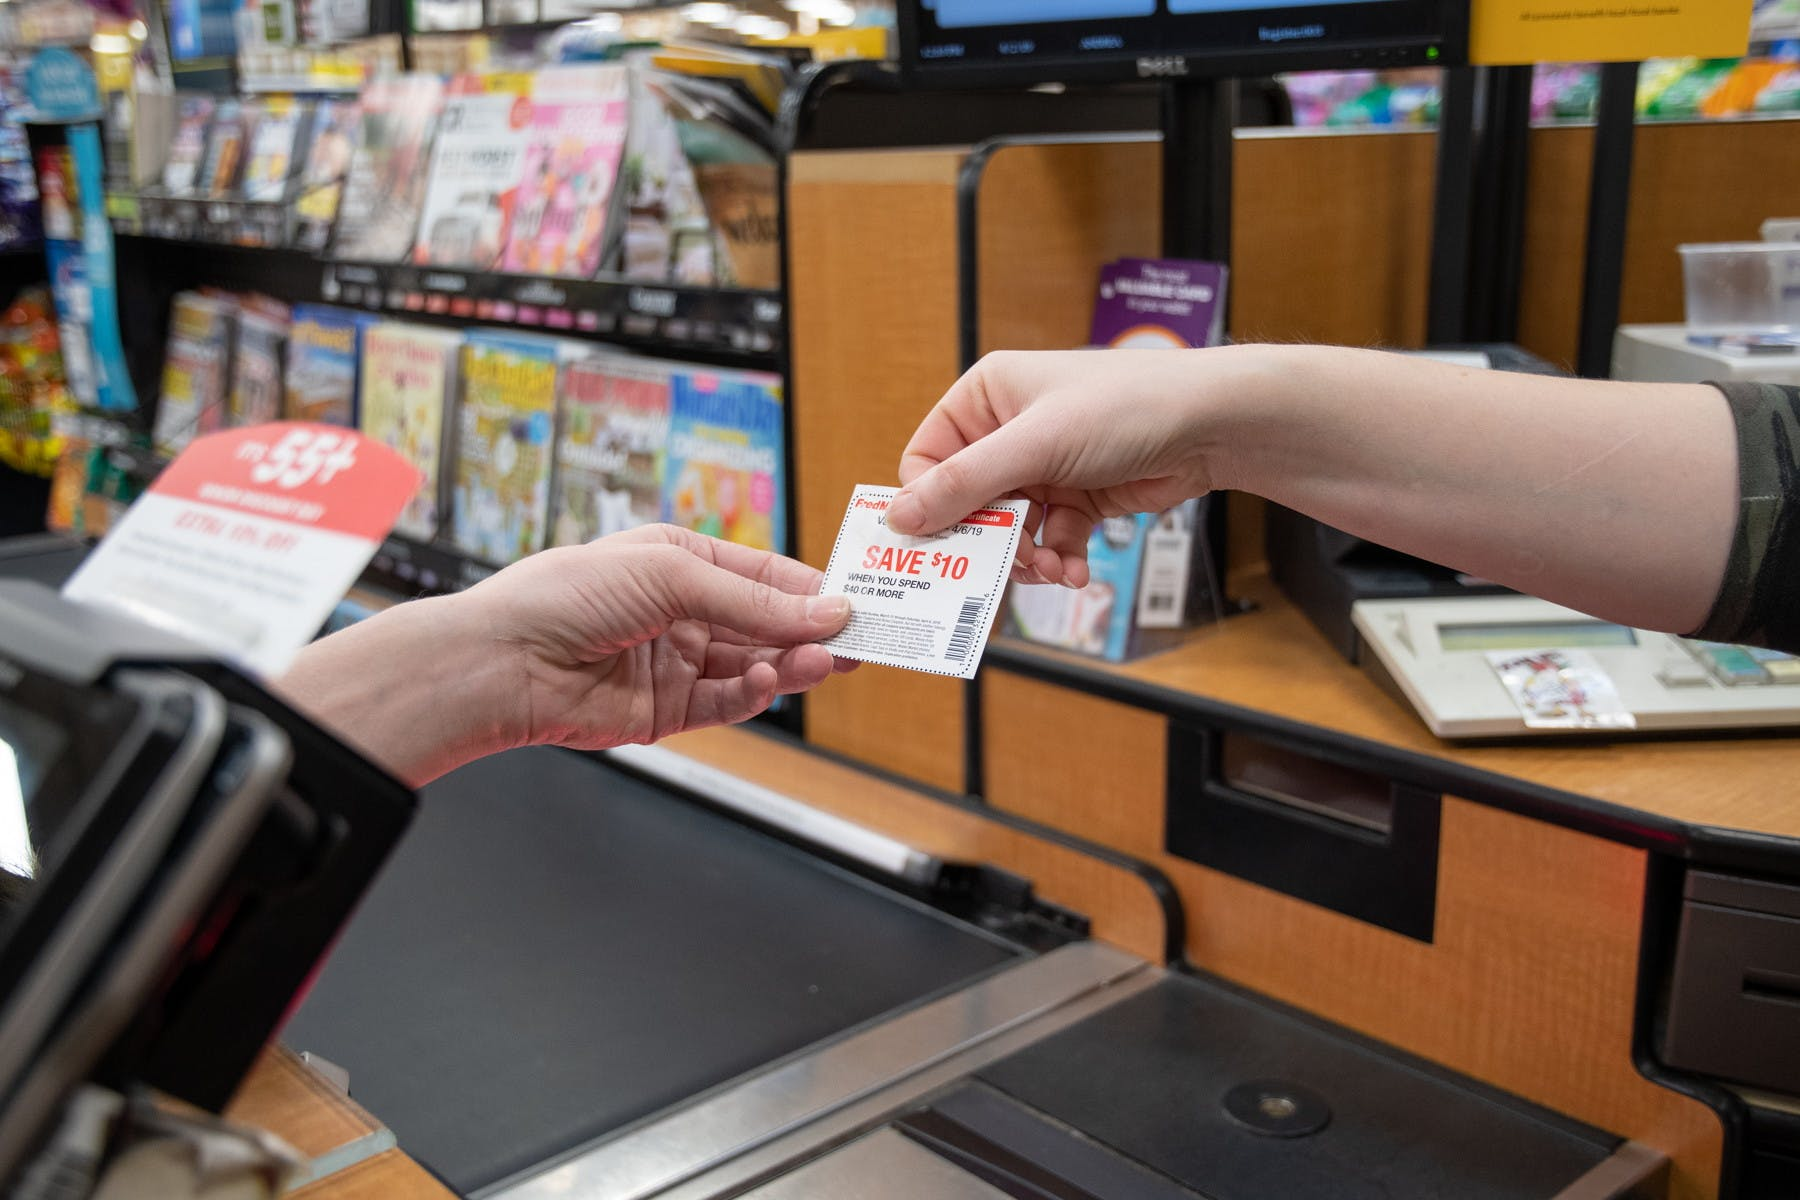 11 Stores That Accept Expired Coupons The Krazy Coupon Lady